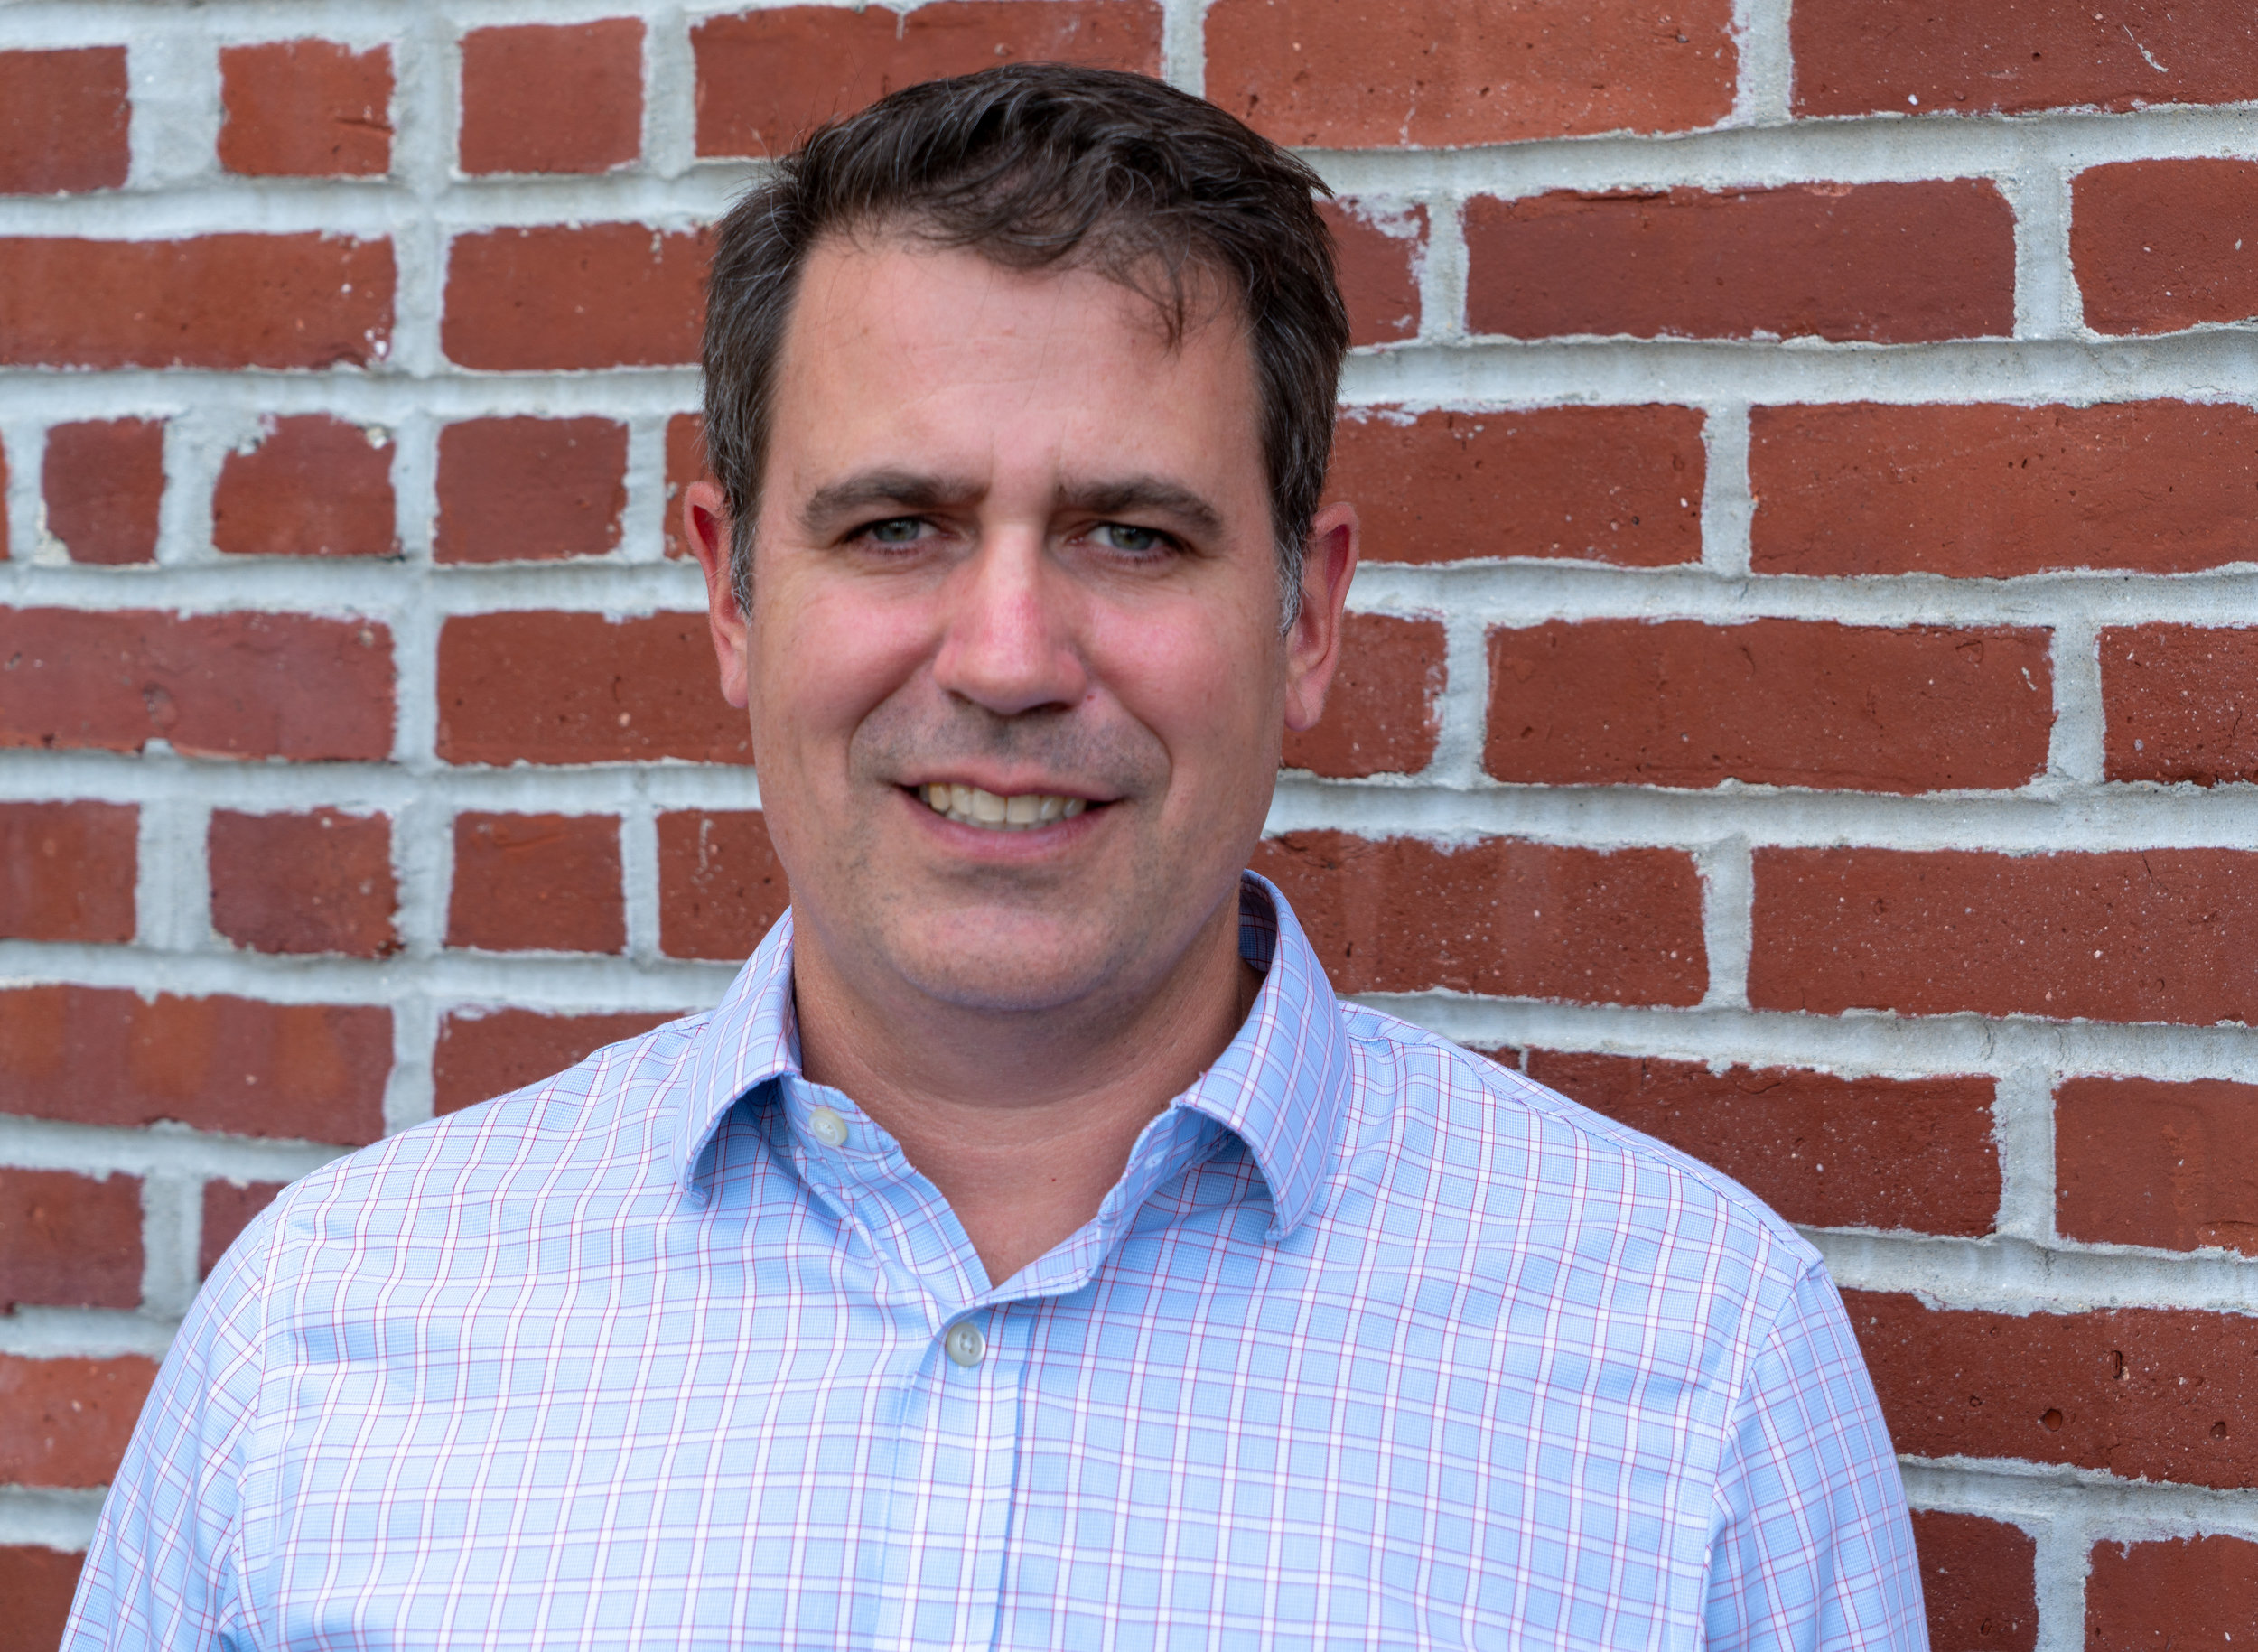 Mick Messman , MBA, Chief Commercial Officer, is responsible for the commercial strategy for GreenLight's business and product portfolio. Mick has over 20 years of global agriculture sales, marketing, business development and operation experience. Mick has held increasingly senior marketing and commercial leadership roles in agricultural companies over his career. Most recently, as Director, Seed Applied and Biological Technologies at Corteva, where he led the efforts to create a new portfolio built through internal discovery and collaborations. He earned his M.B.A. at Colorado State University, and a Bachelor of Science in Agribusiness from the University of Nebraska, Lincoln.